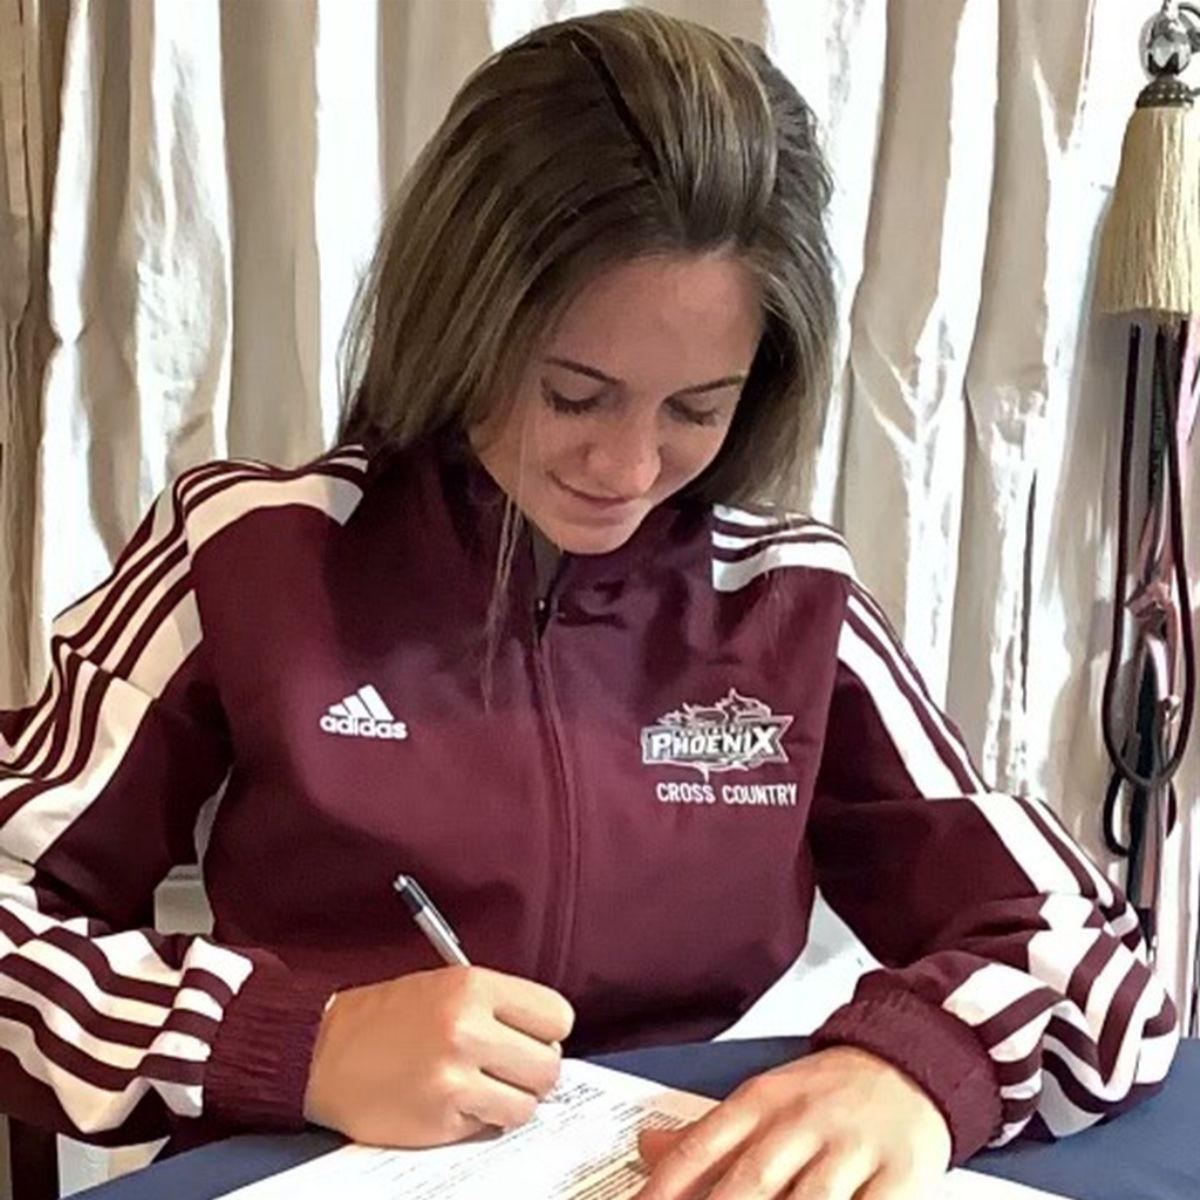 Britt signs with CU Women's Cross Country